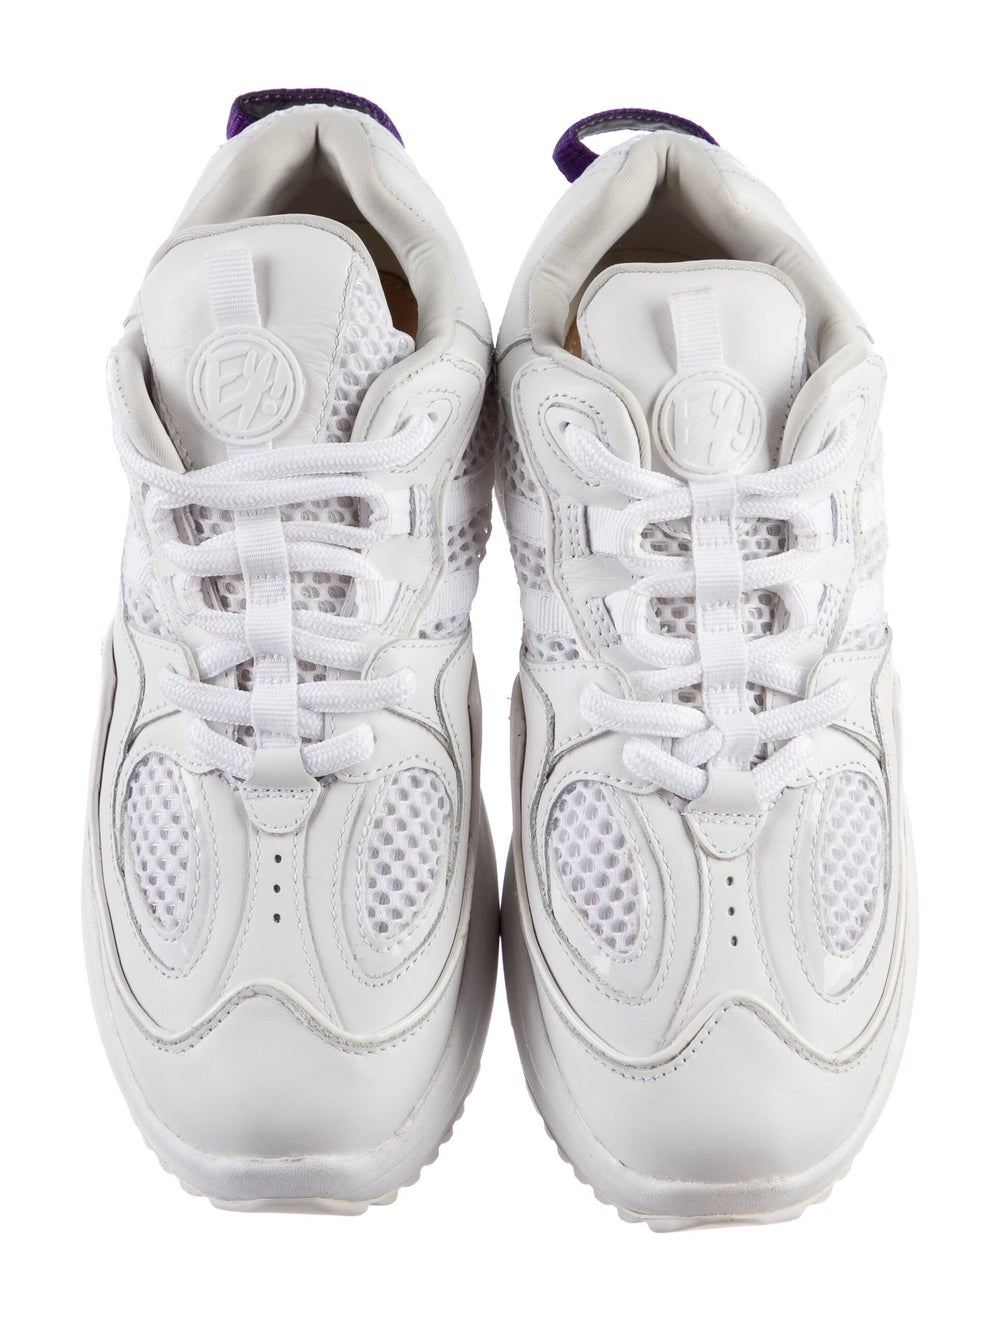 Eytys Leather Sneakers White - image 3